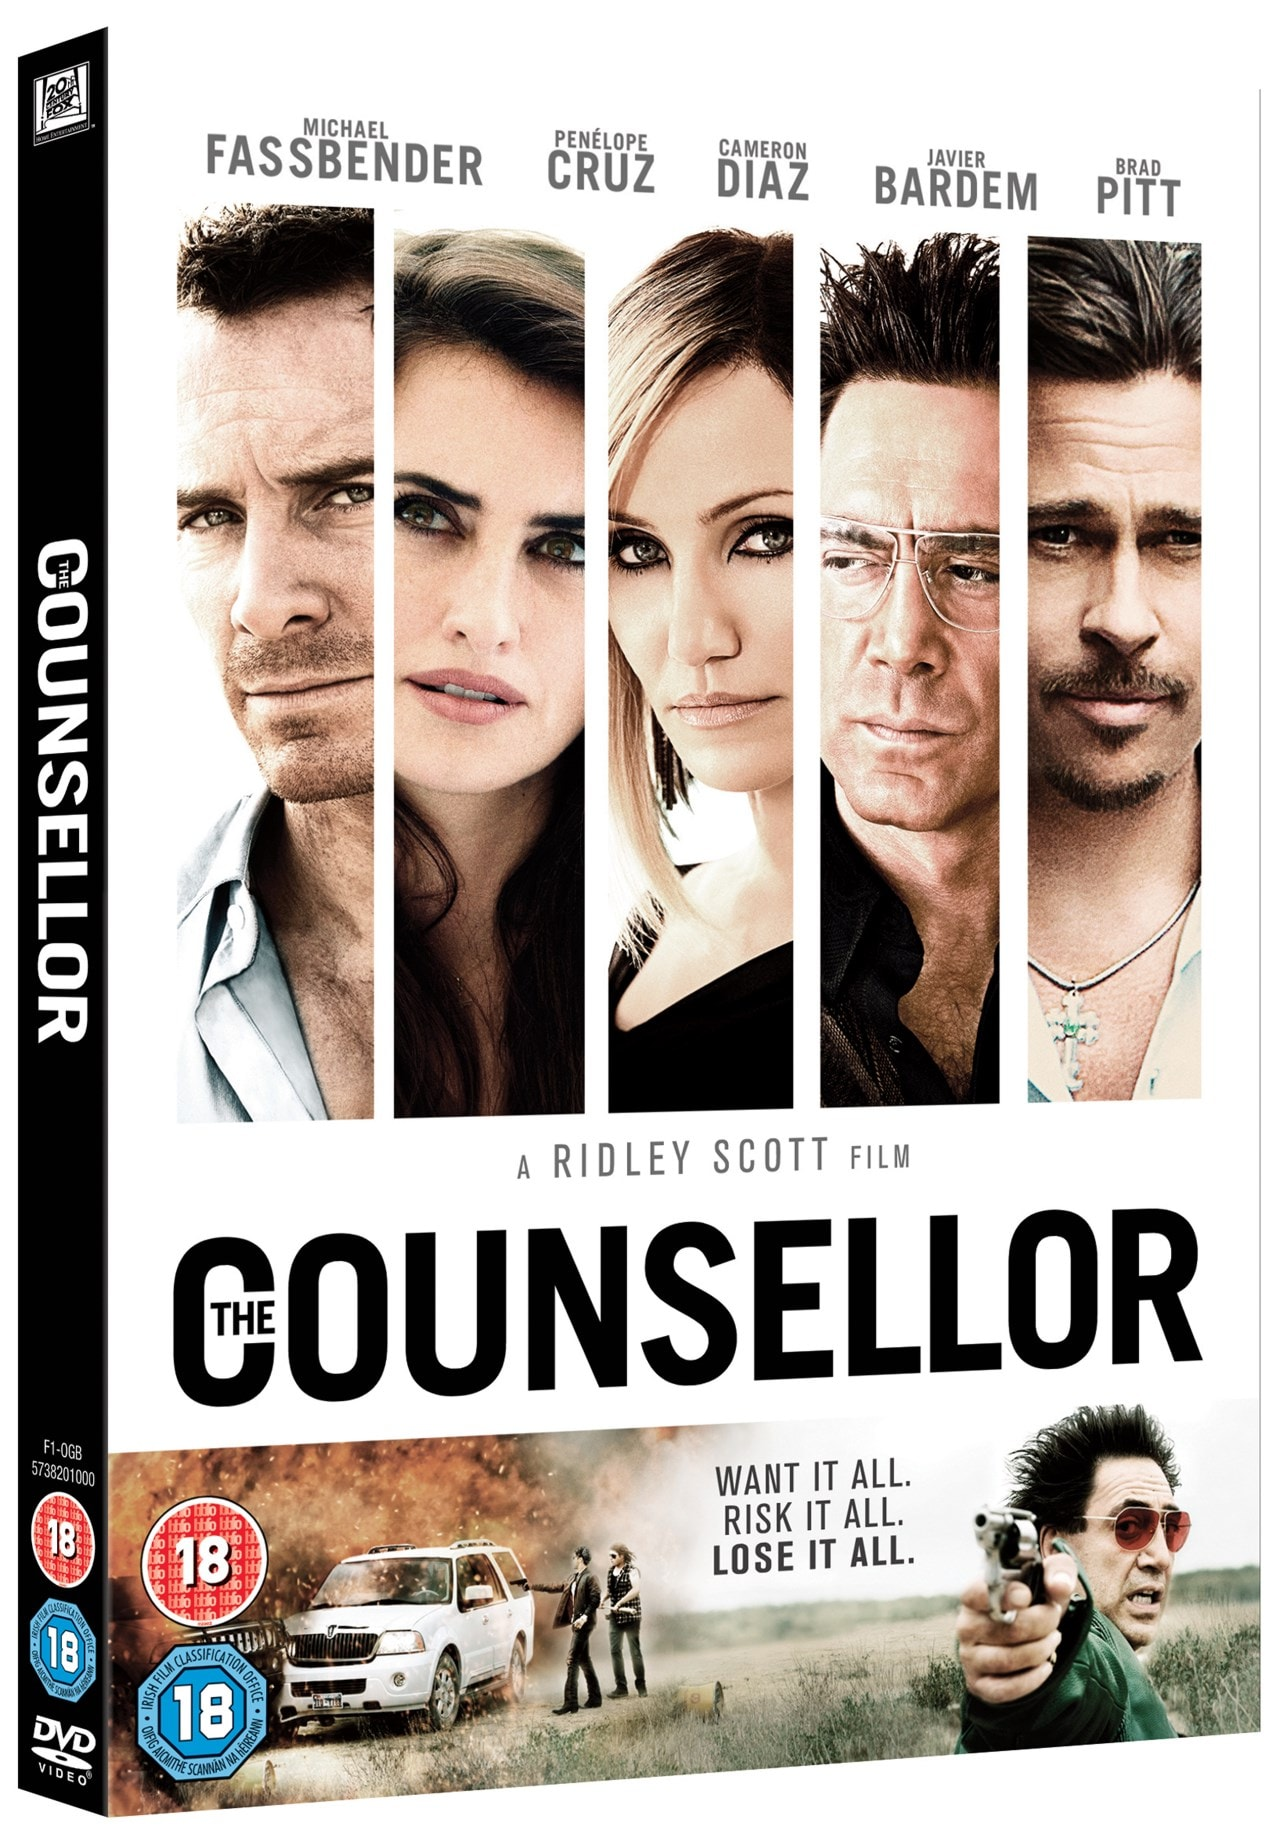 The Counsellor - 2